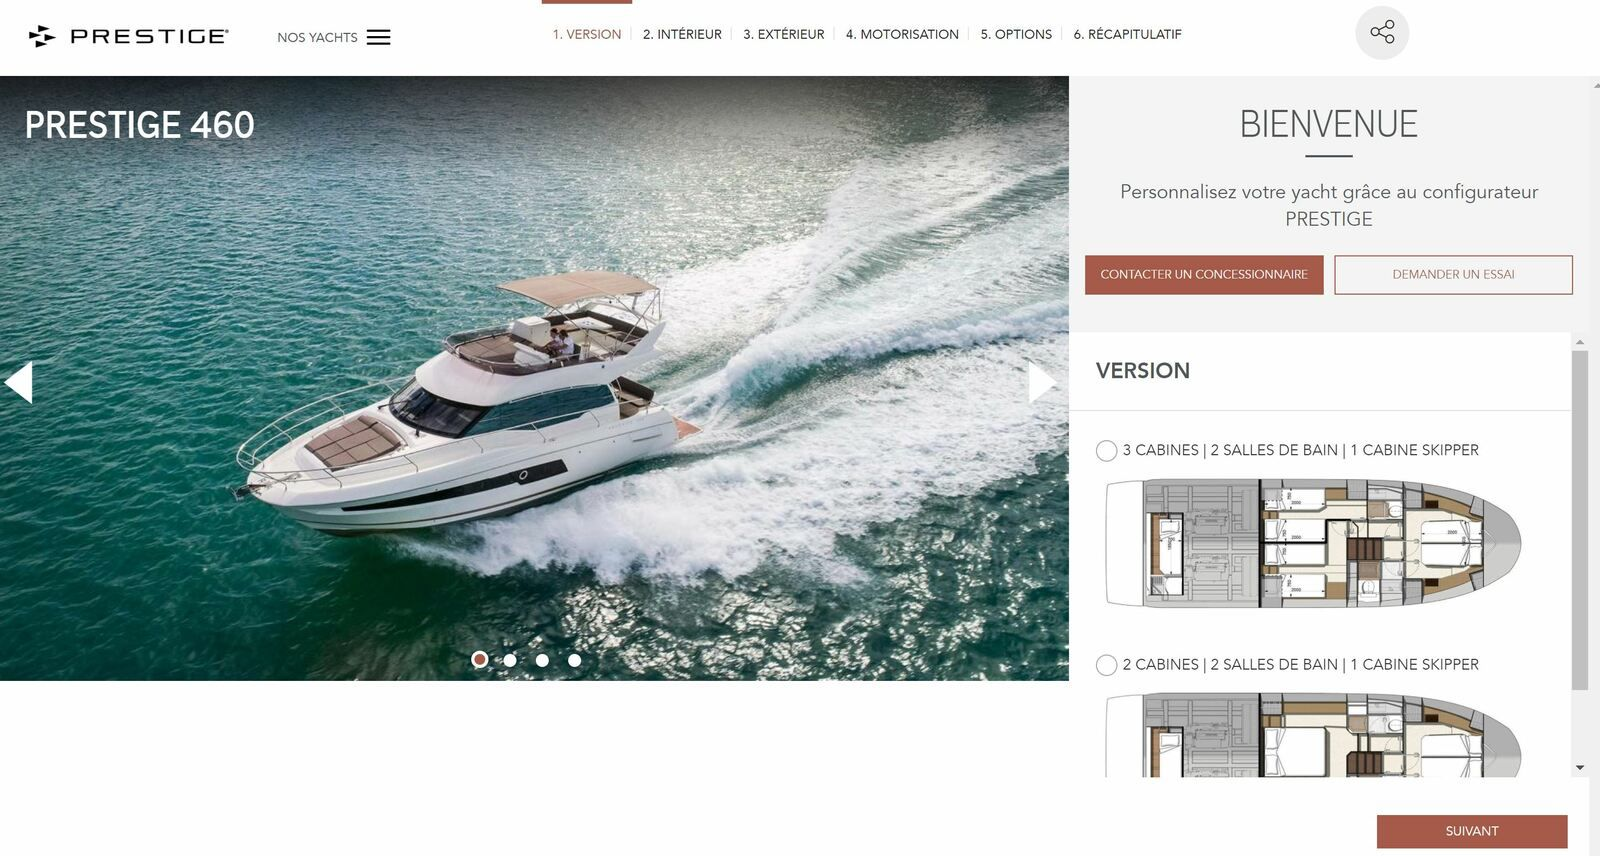 Prestige Yachts - an online configurator to customize your motoryacht